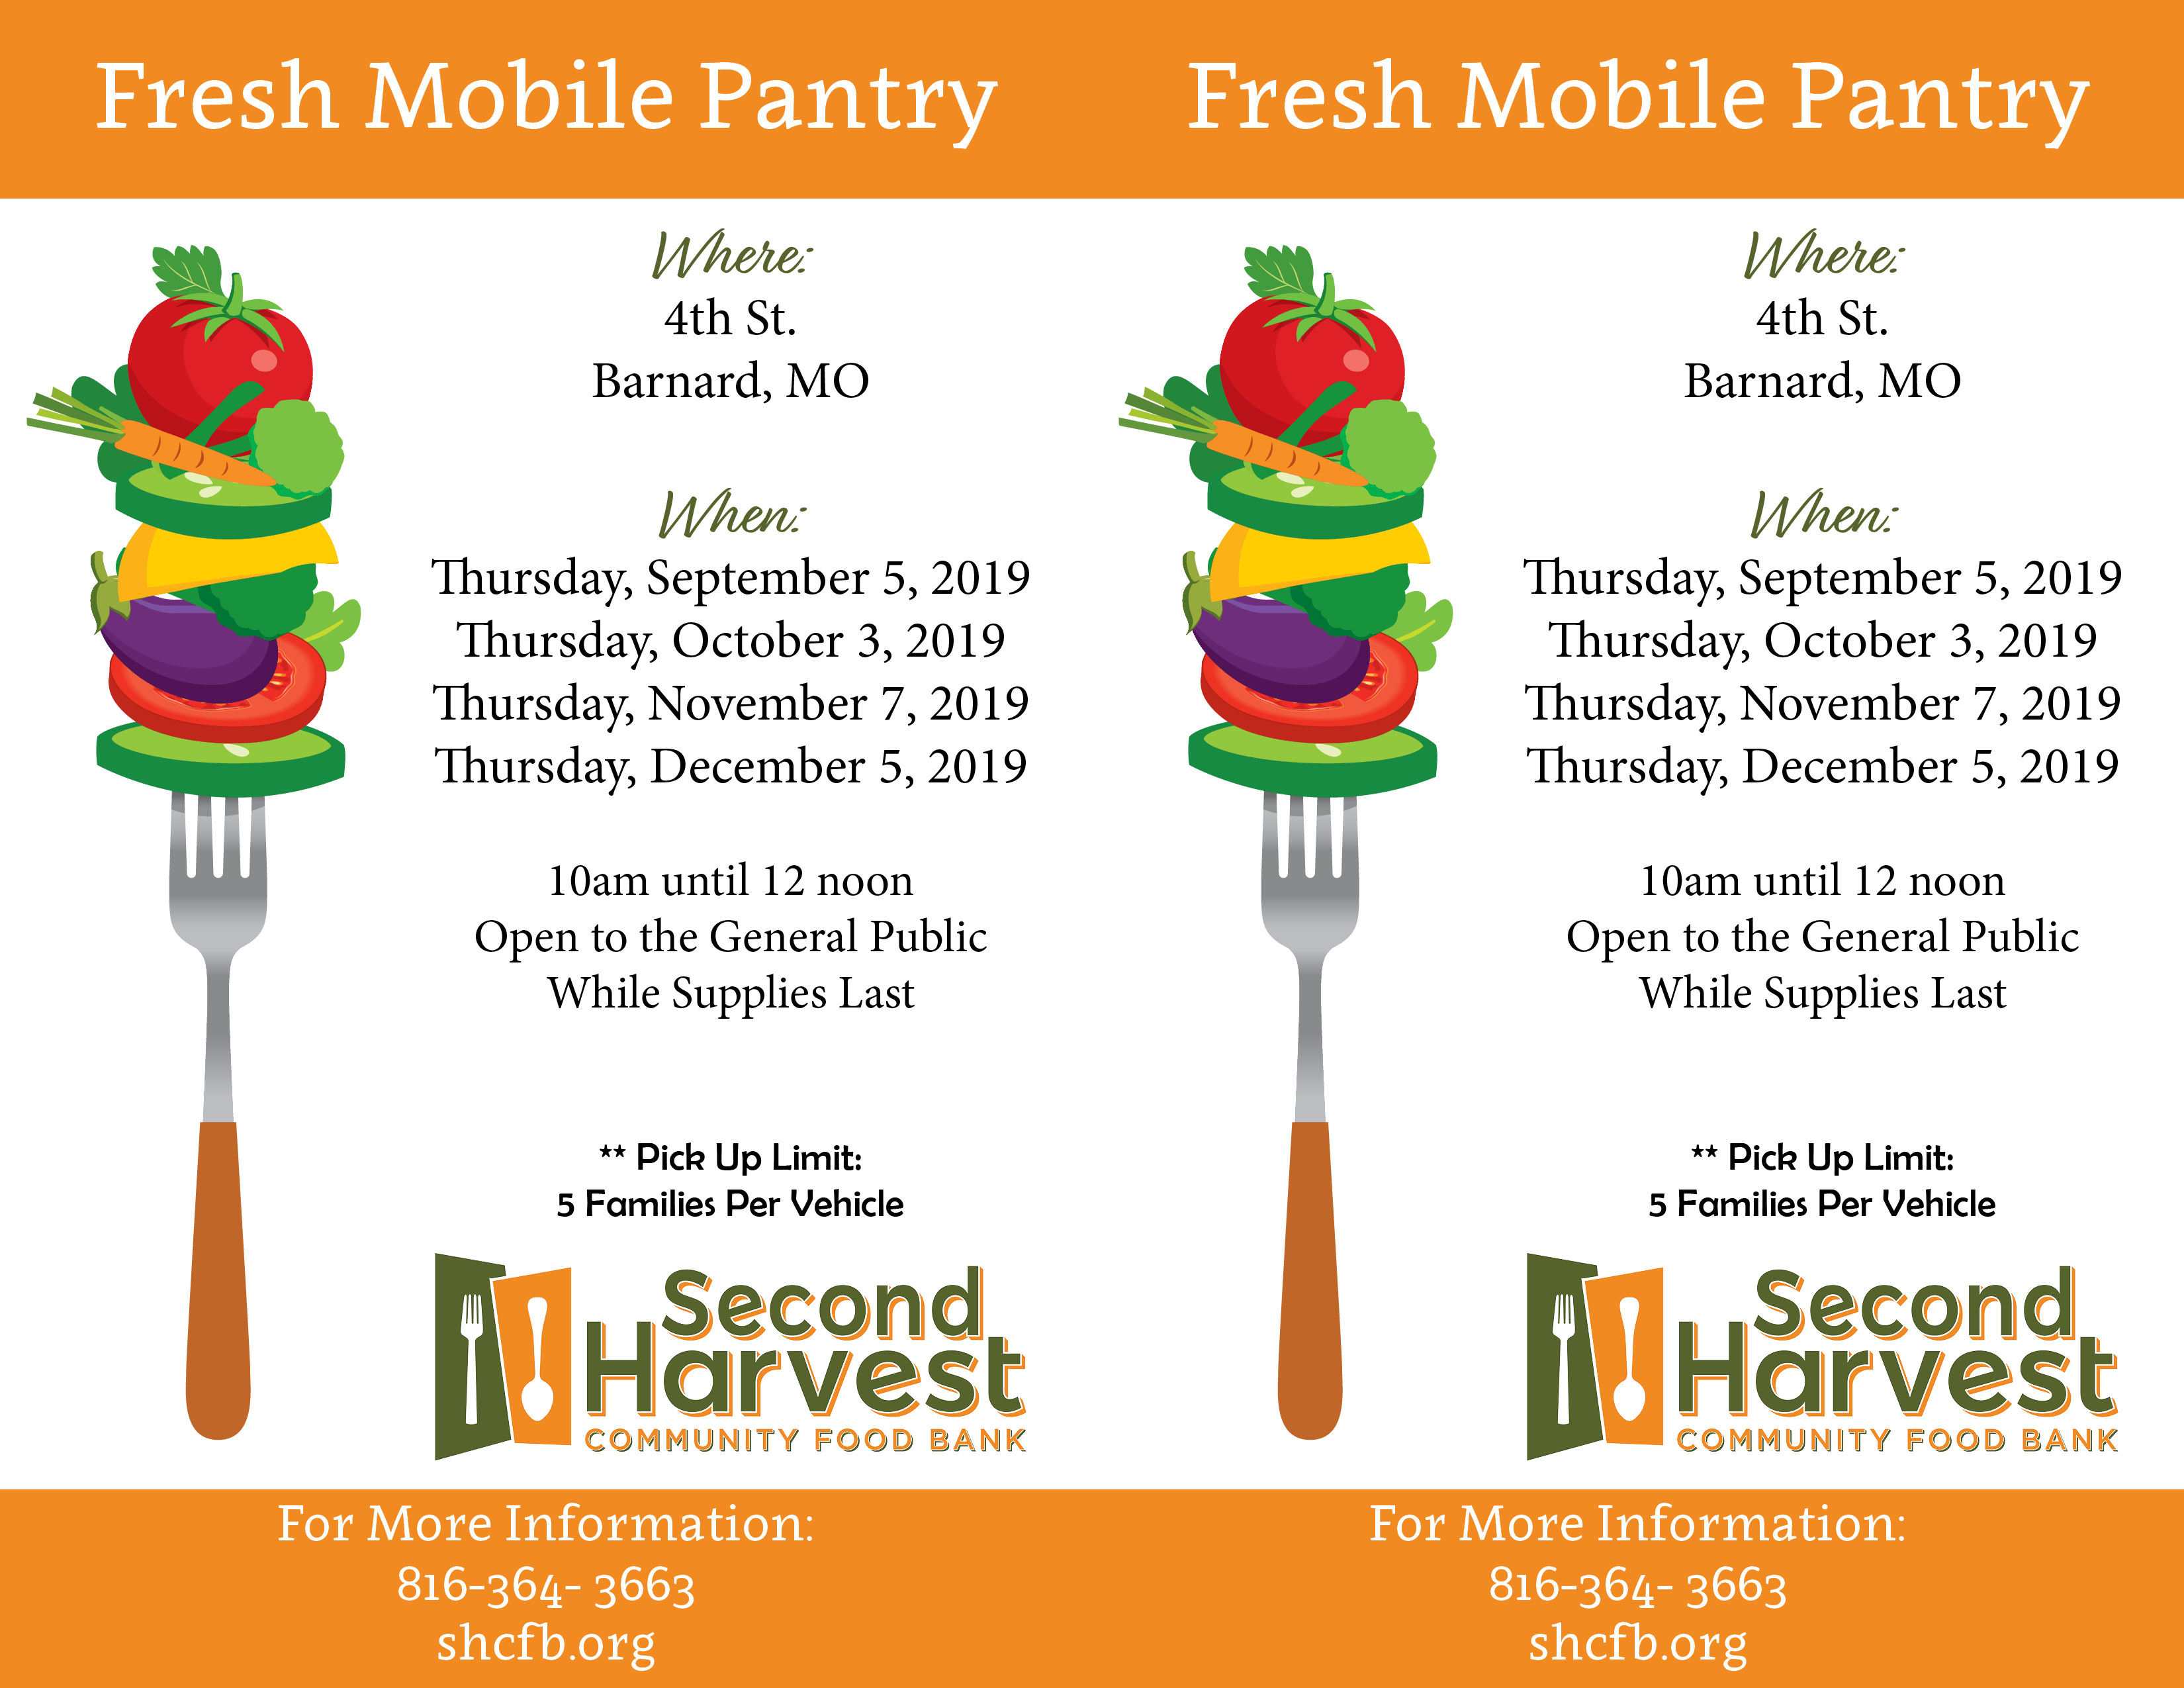 Barnard Fresh Mobile Pantry